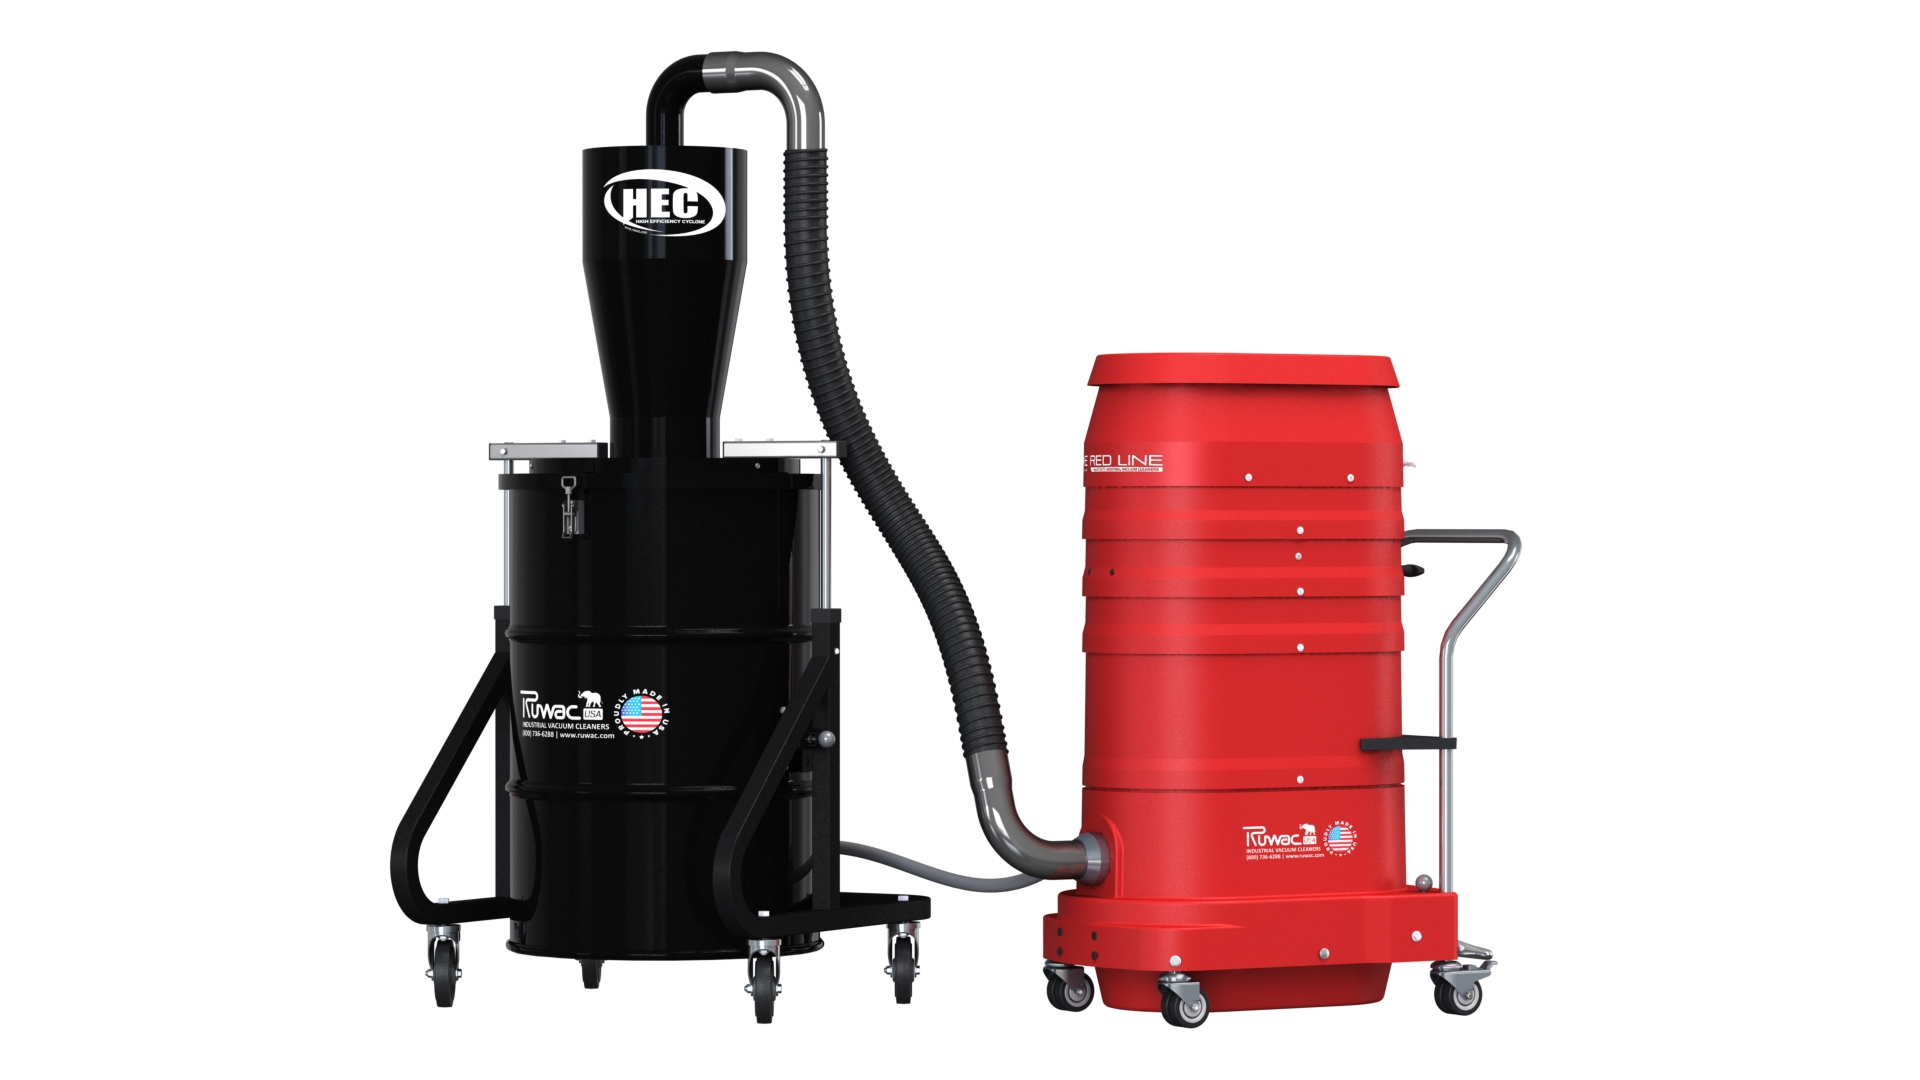 Hepa Mold Vacuum Cleaner Manufacturer Ruwac Usa